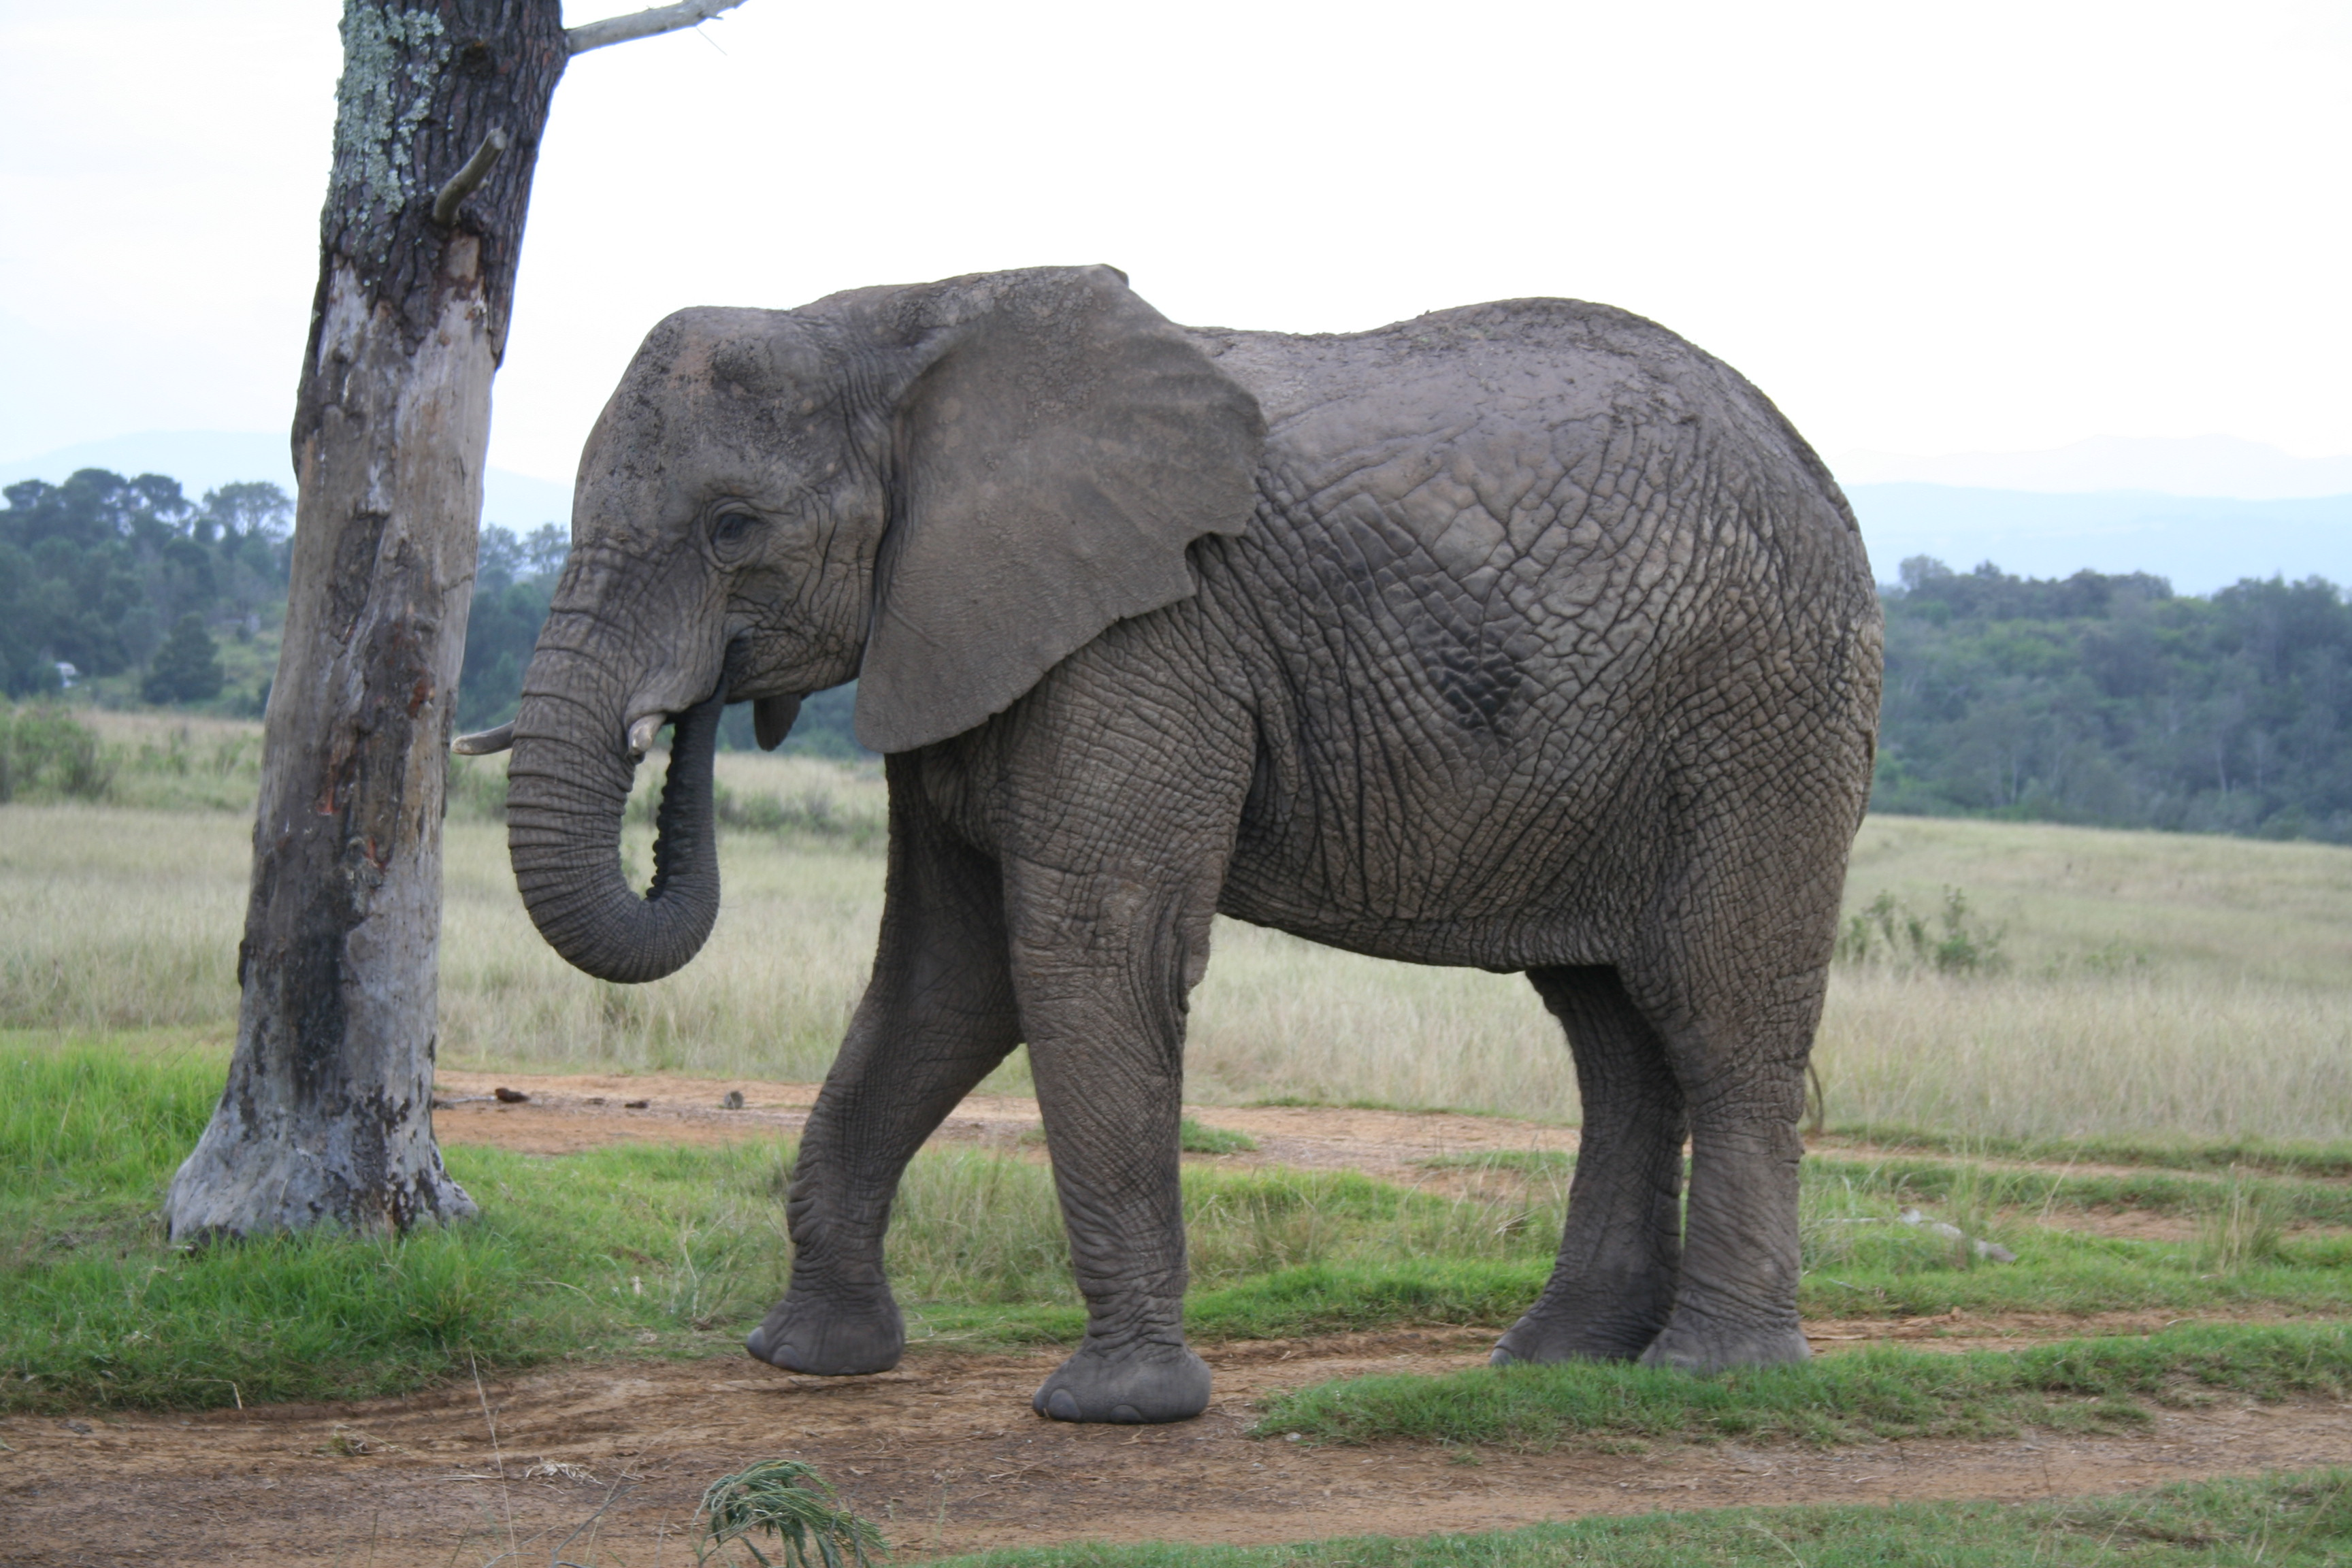 Elephant, Africa, Safari, South, Wild, HQ Photo